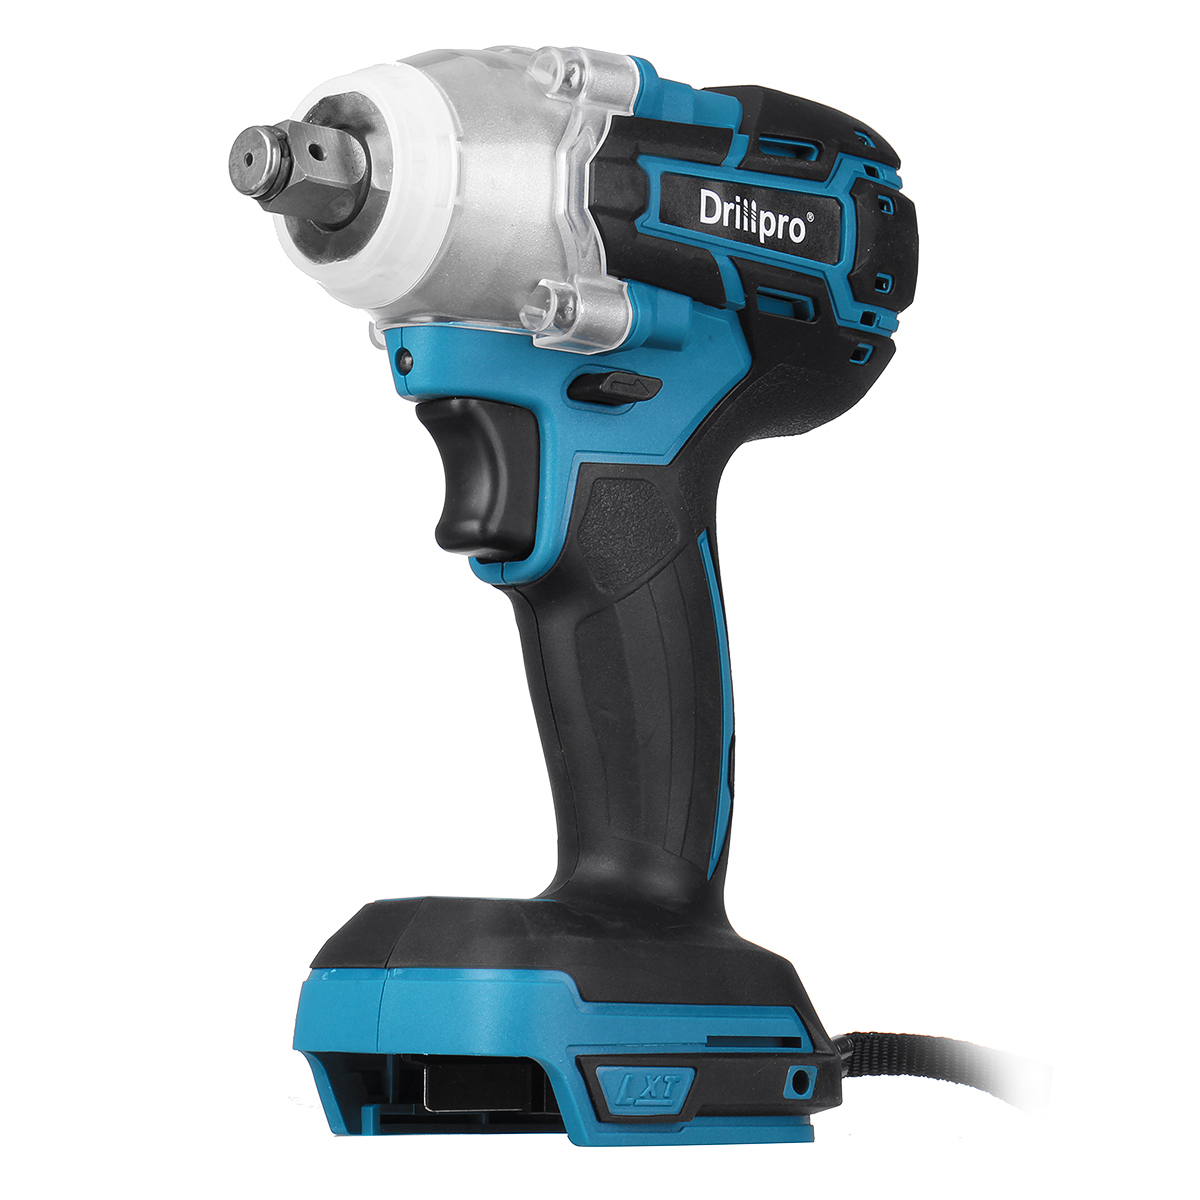 Drillpro Cordles Brushless Electric Impact Wrench 1 2 inch Power Tool With LED Light for Makita 18V Battery  Tool Only